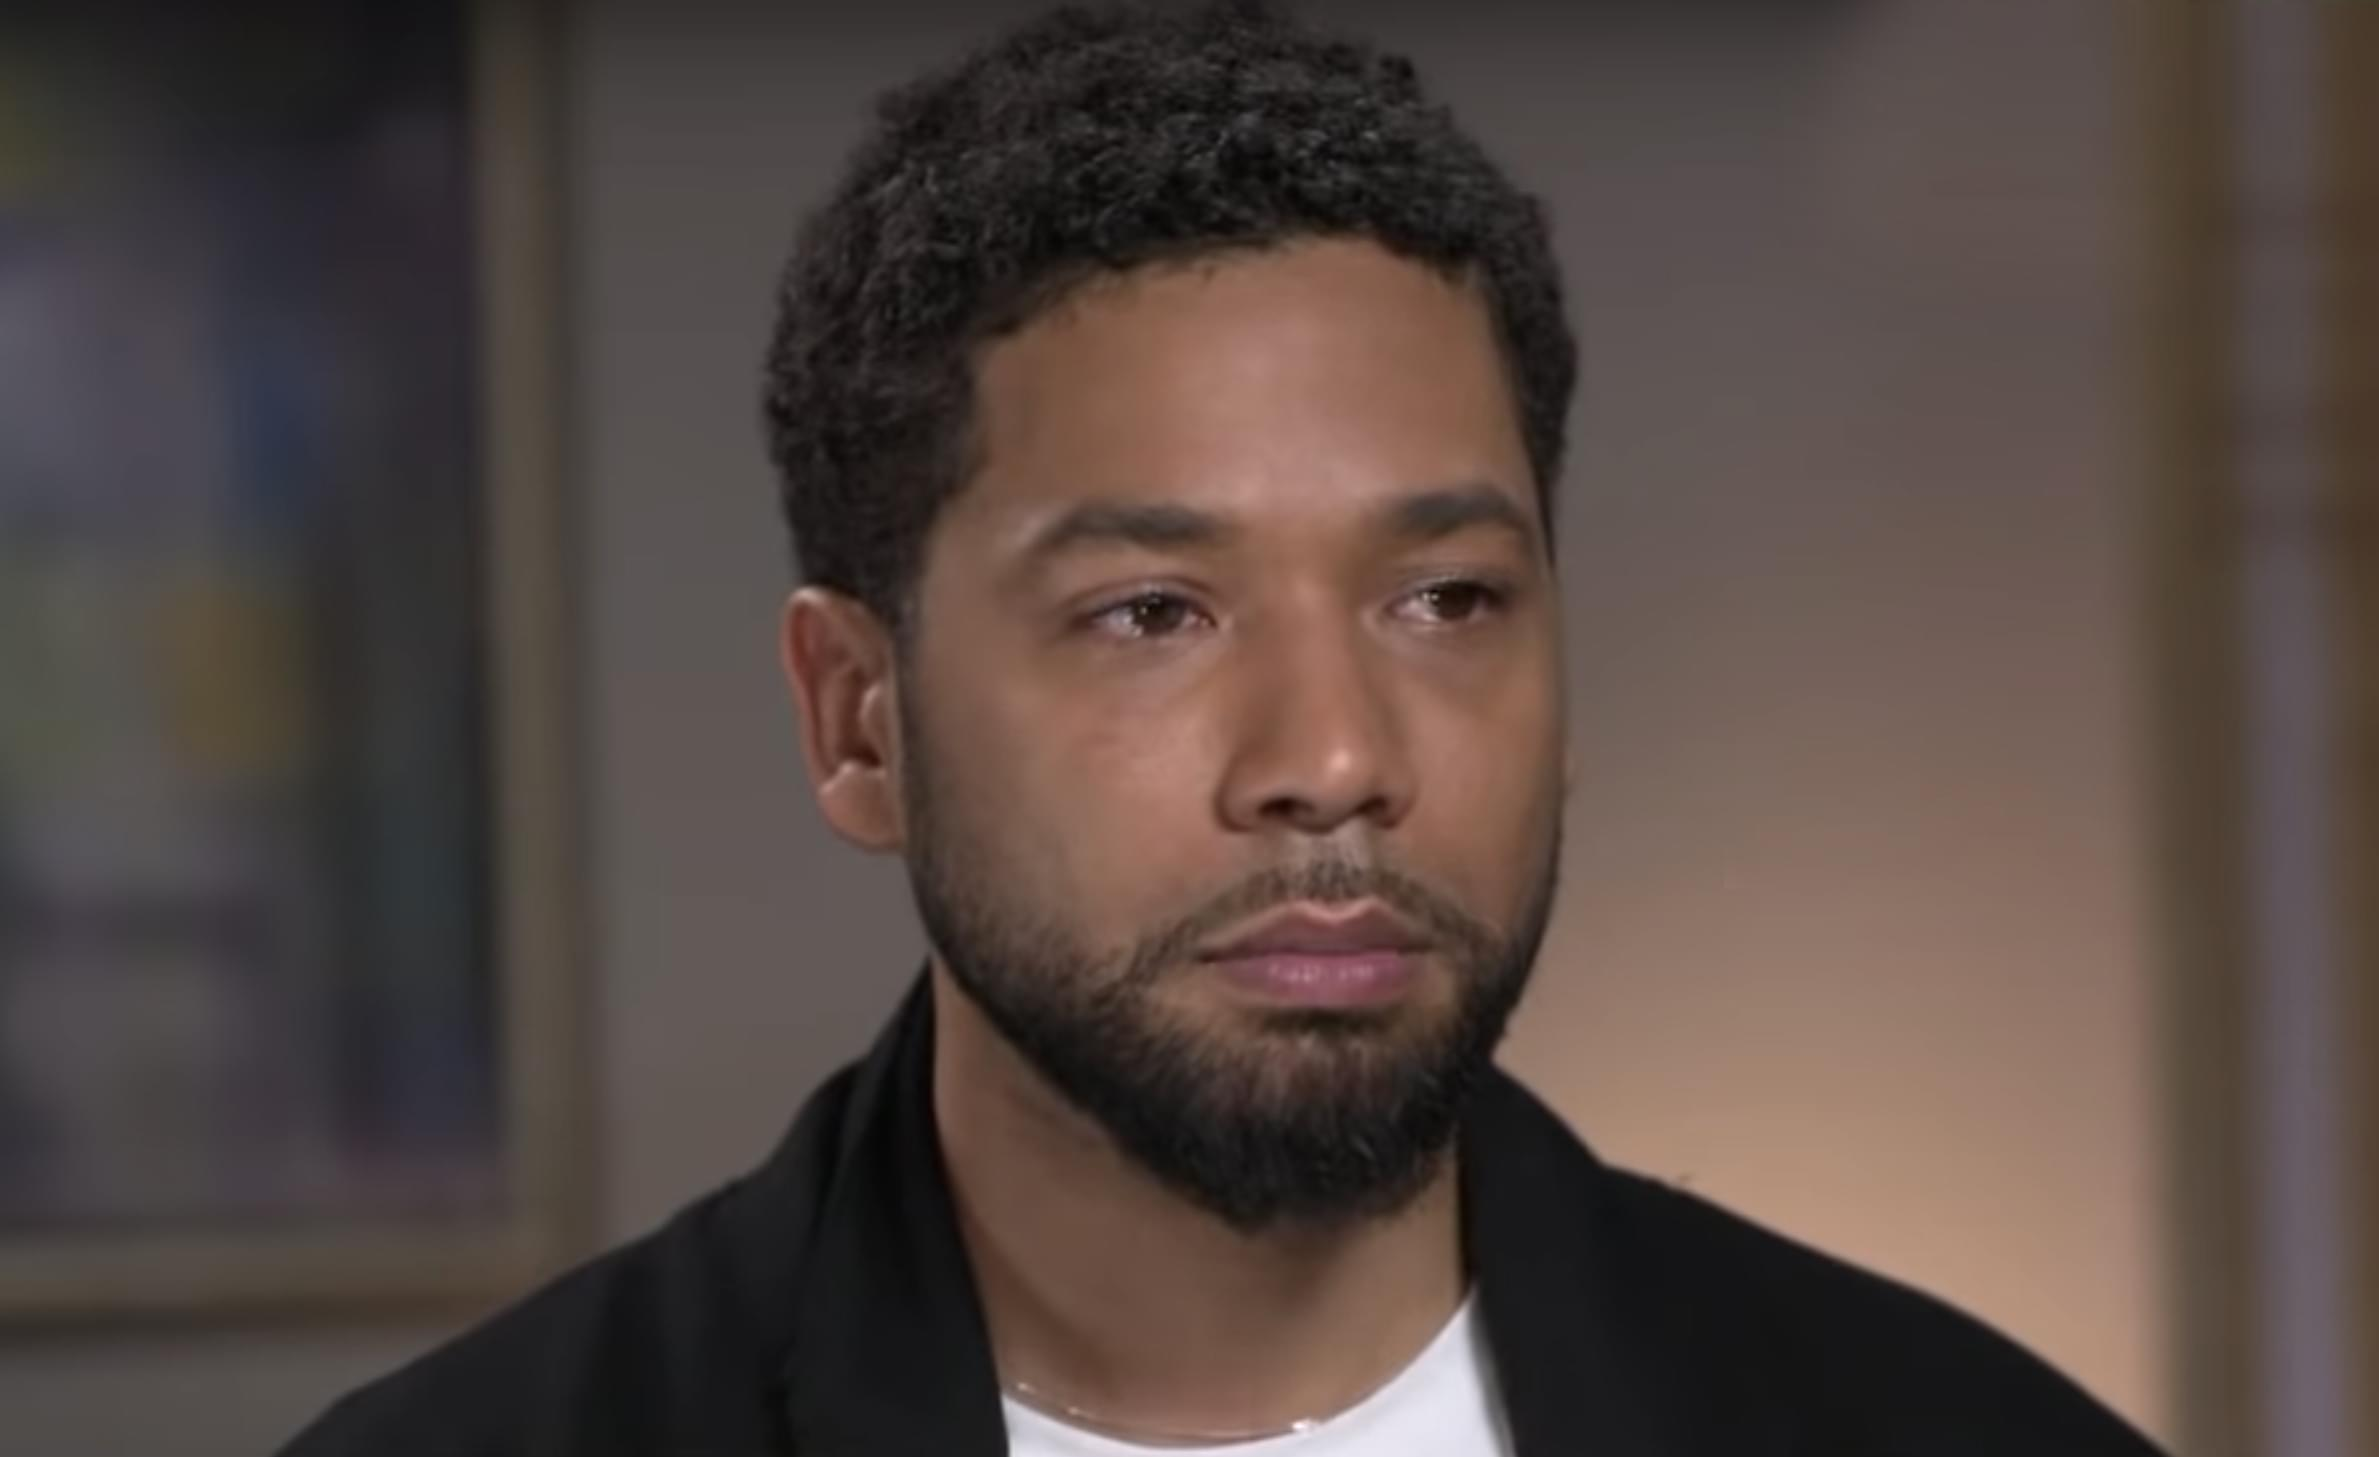 Jussie Smollett alicia keys